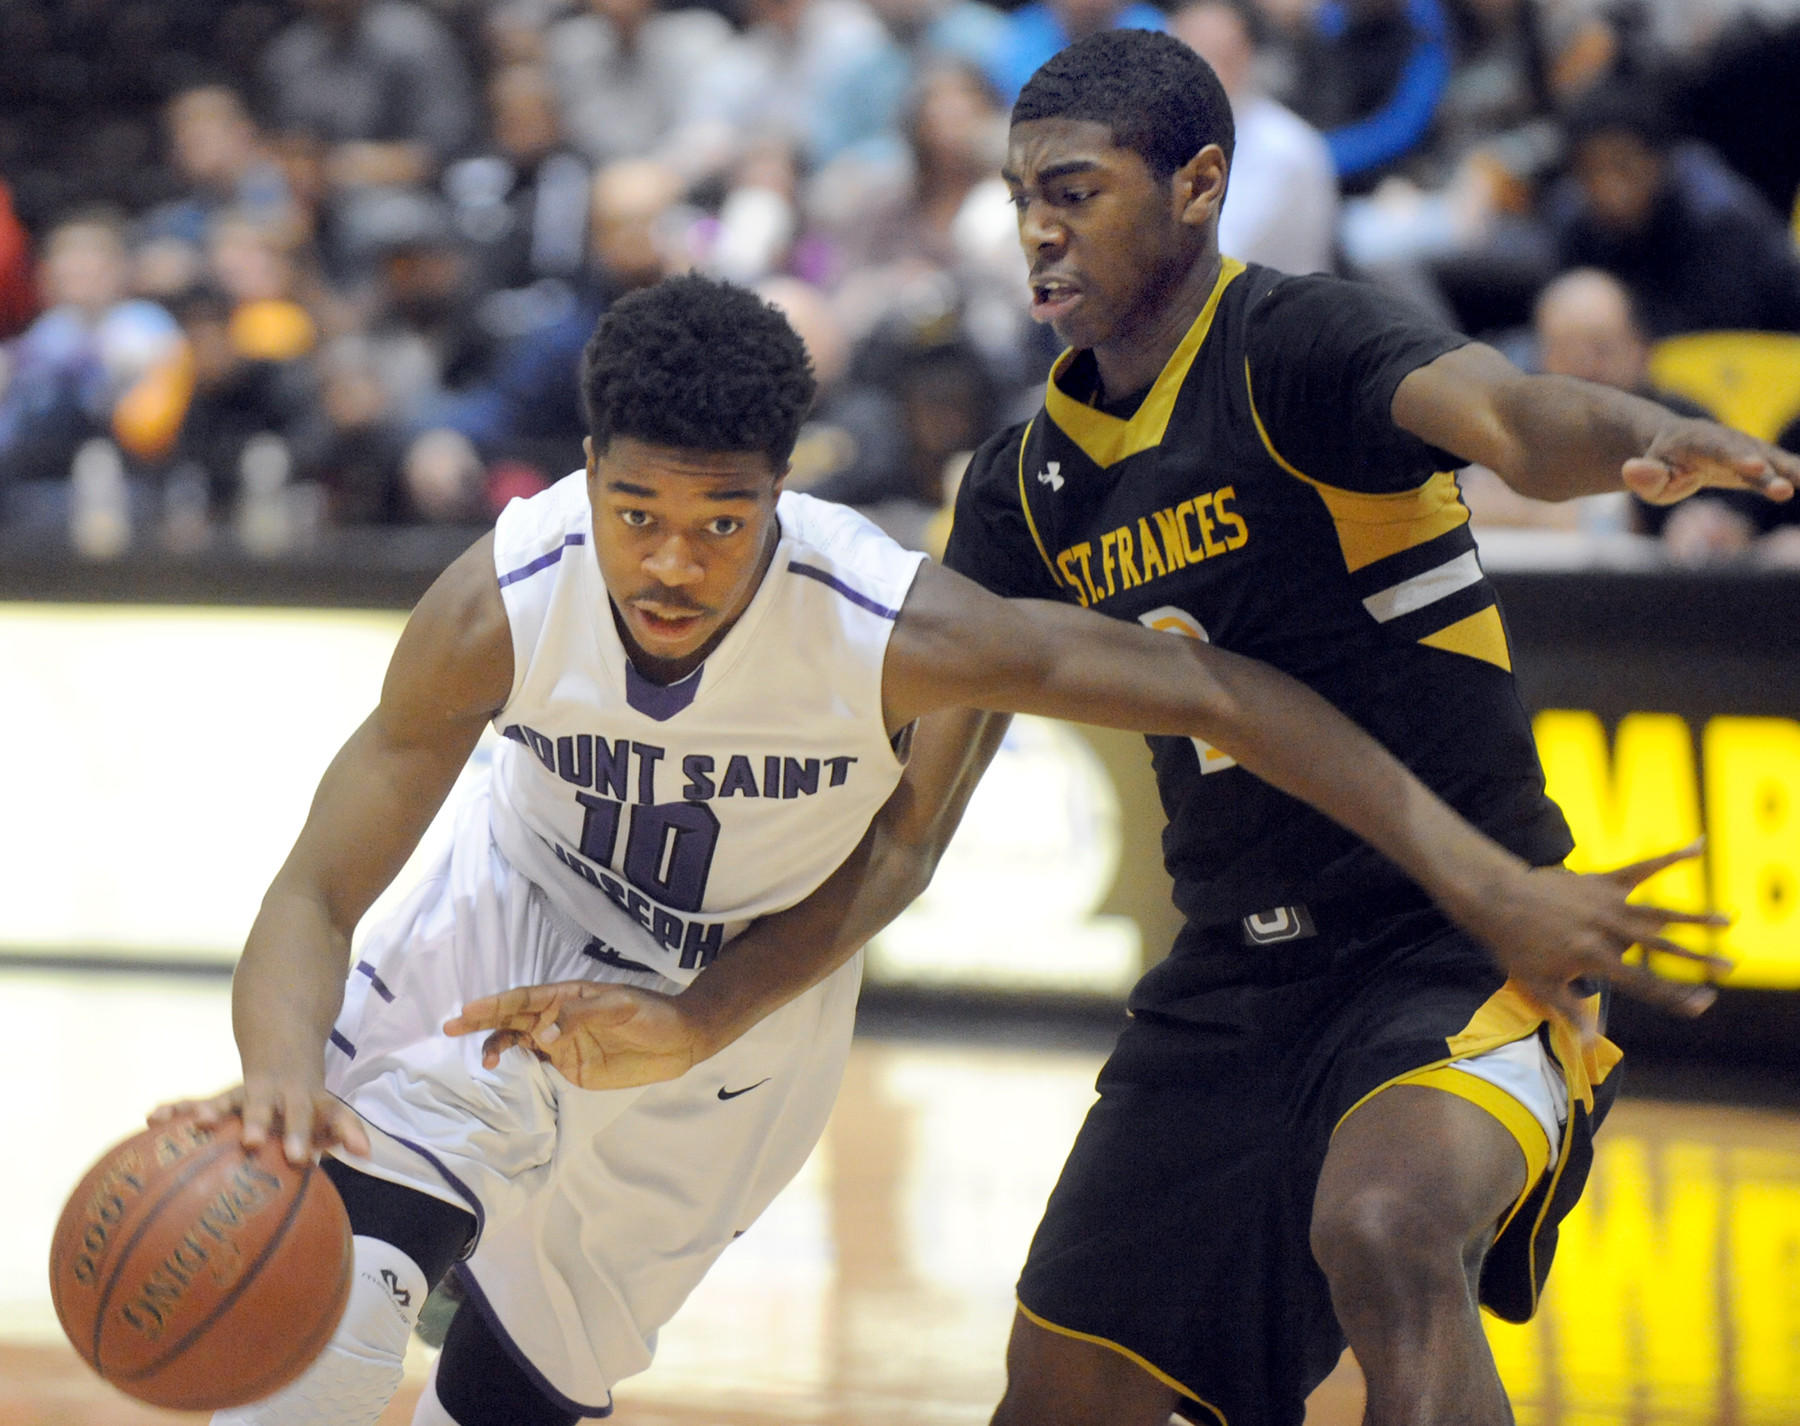 Mount St. Joseph's Jordan McNeil holds onto the ball as St. Frances' Jared Hamilton defends.